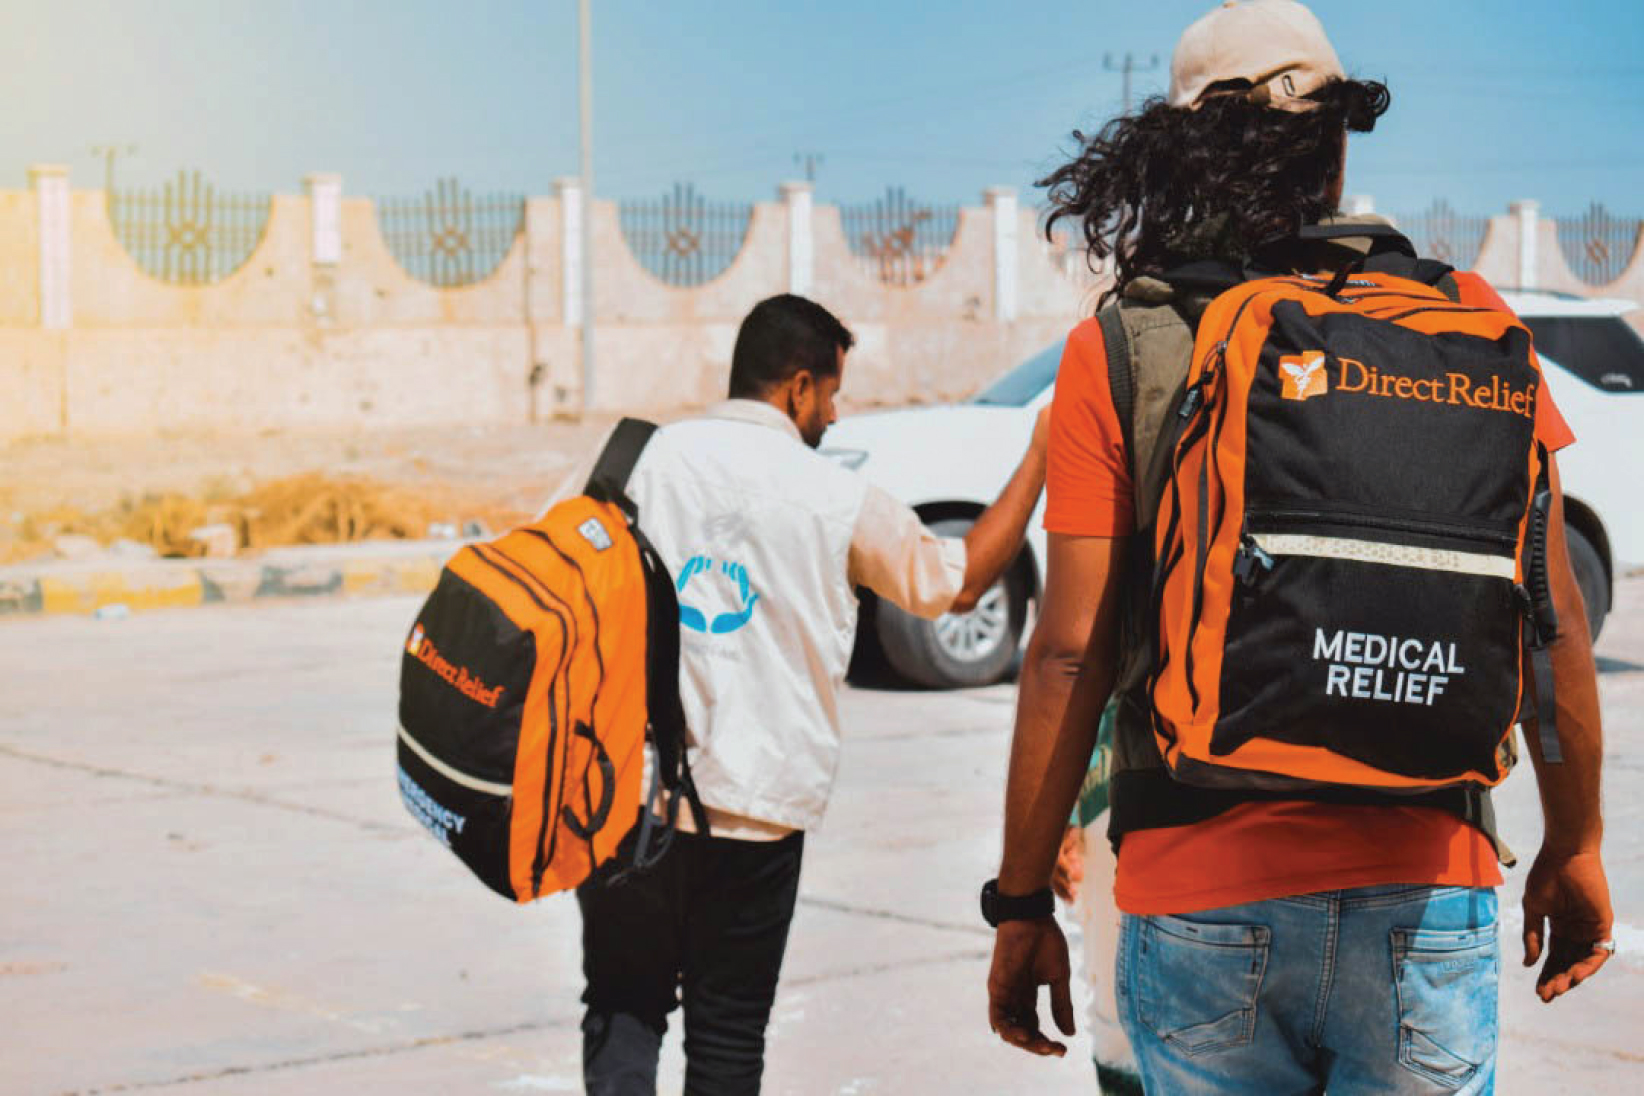 Two men with their back to the camera with orange and black Direct Relief backpacks on